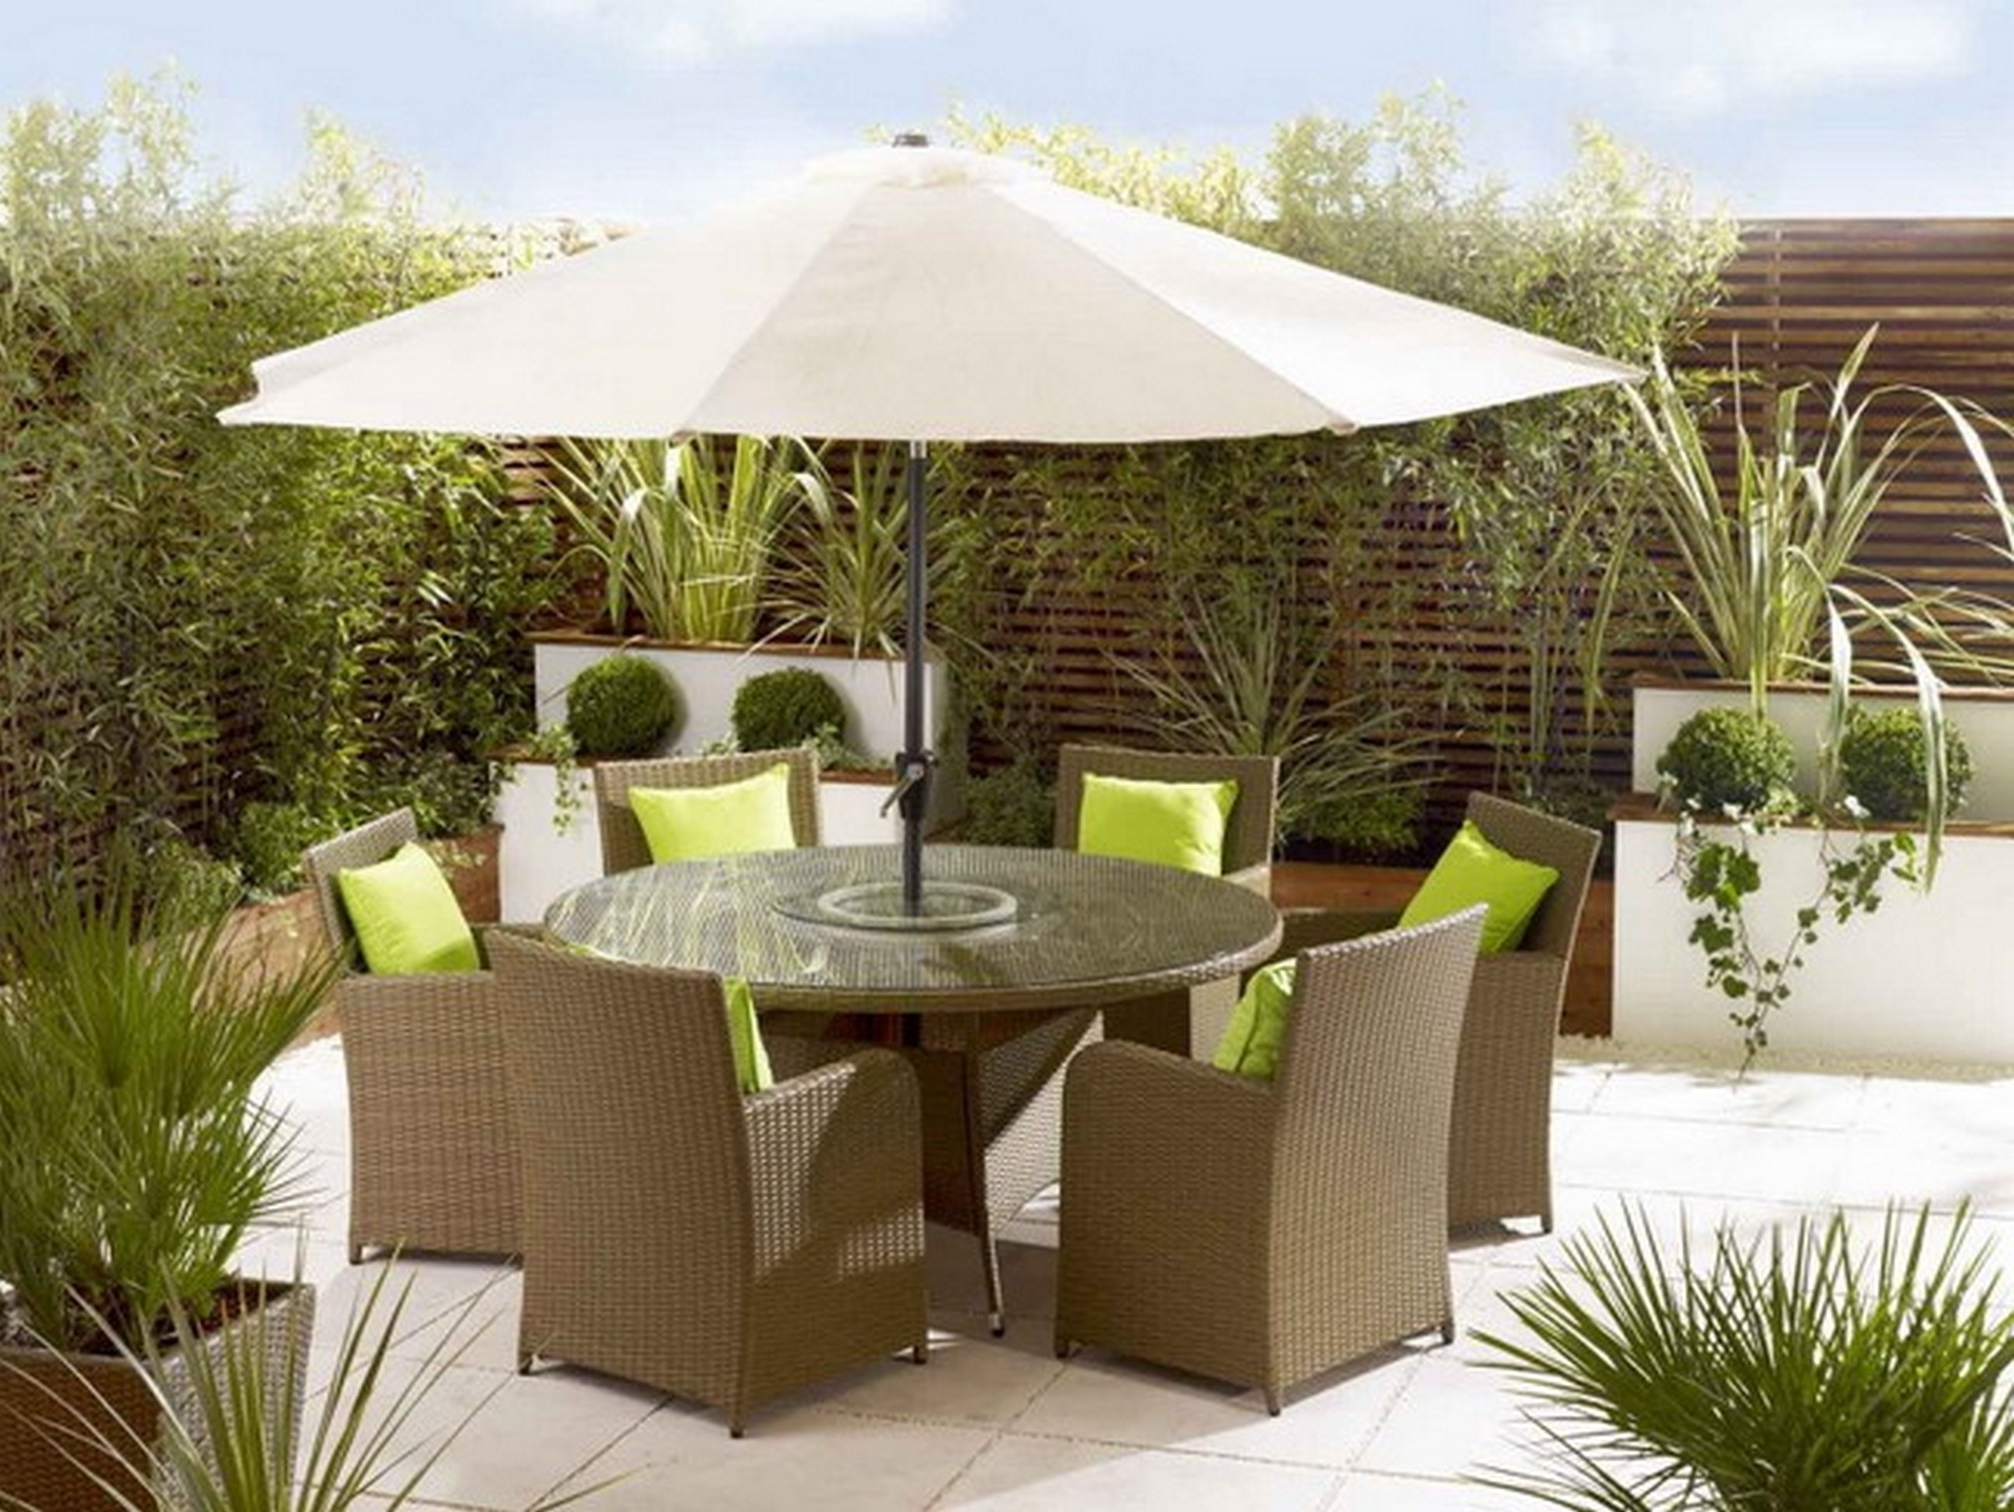 Patio Sets With Umbrellas In Well Known The Patio Table Umbrella For Comfort Gathering — Mistikcamping Home (View 6 of 20)